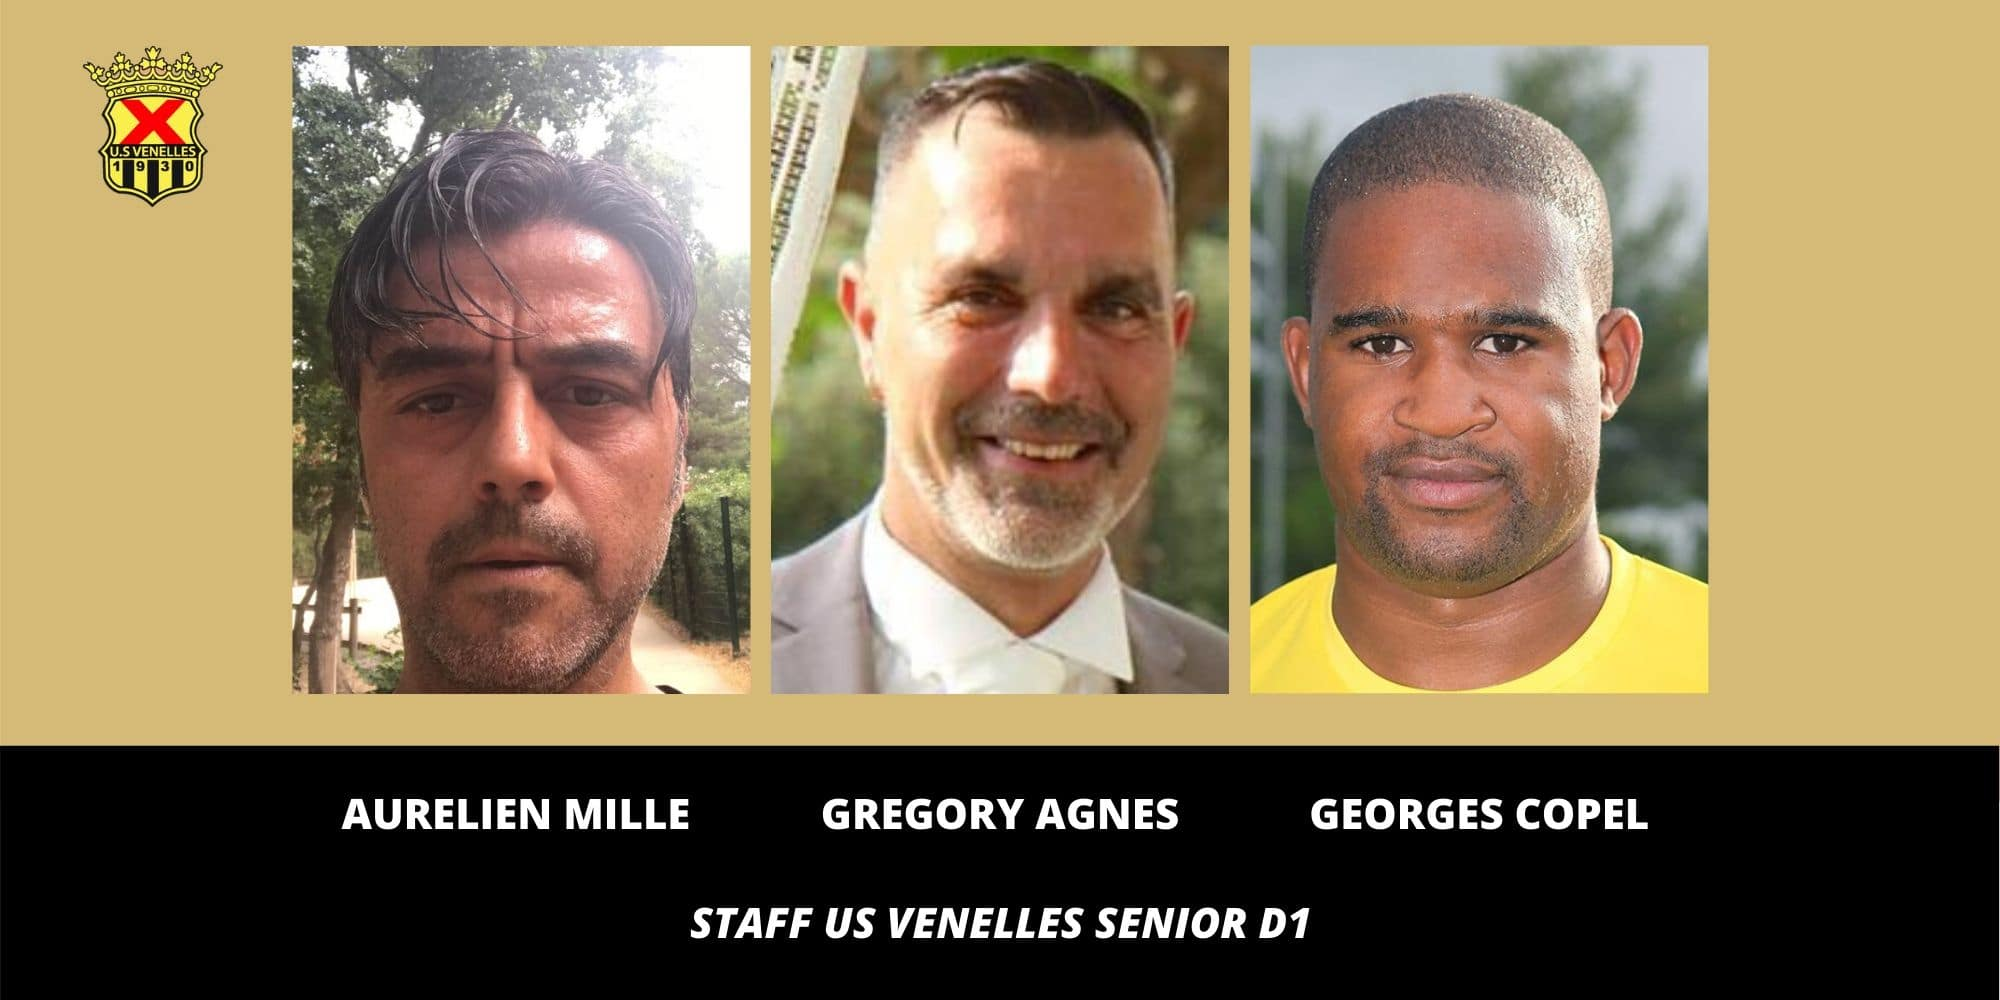 STAFF US VENELLES SENIOR D1